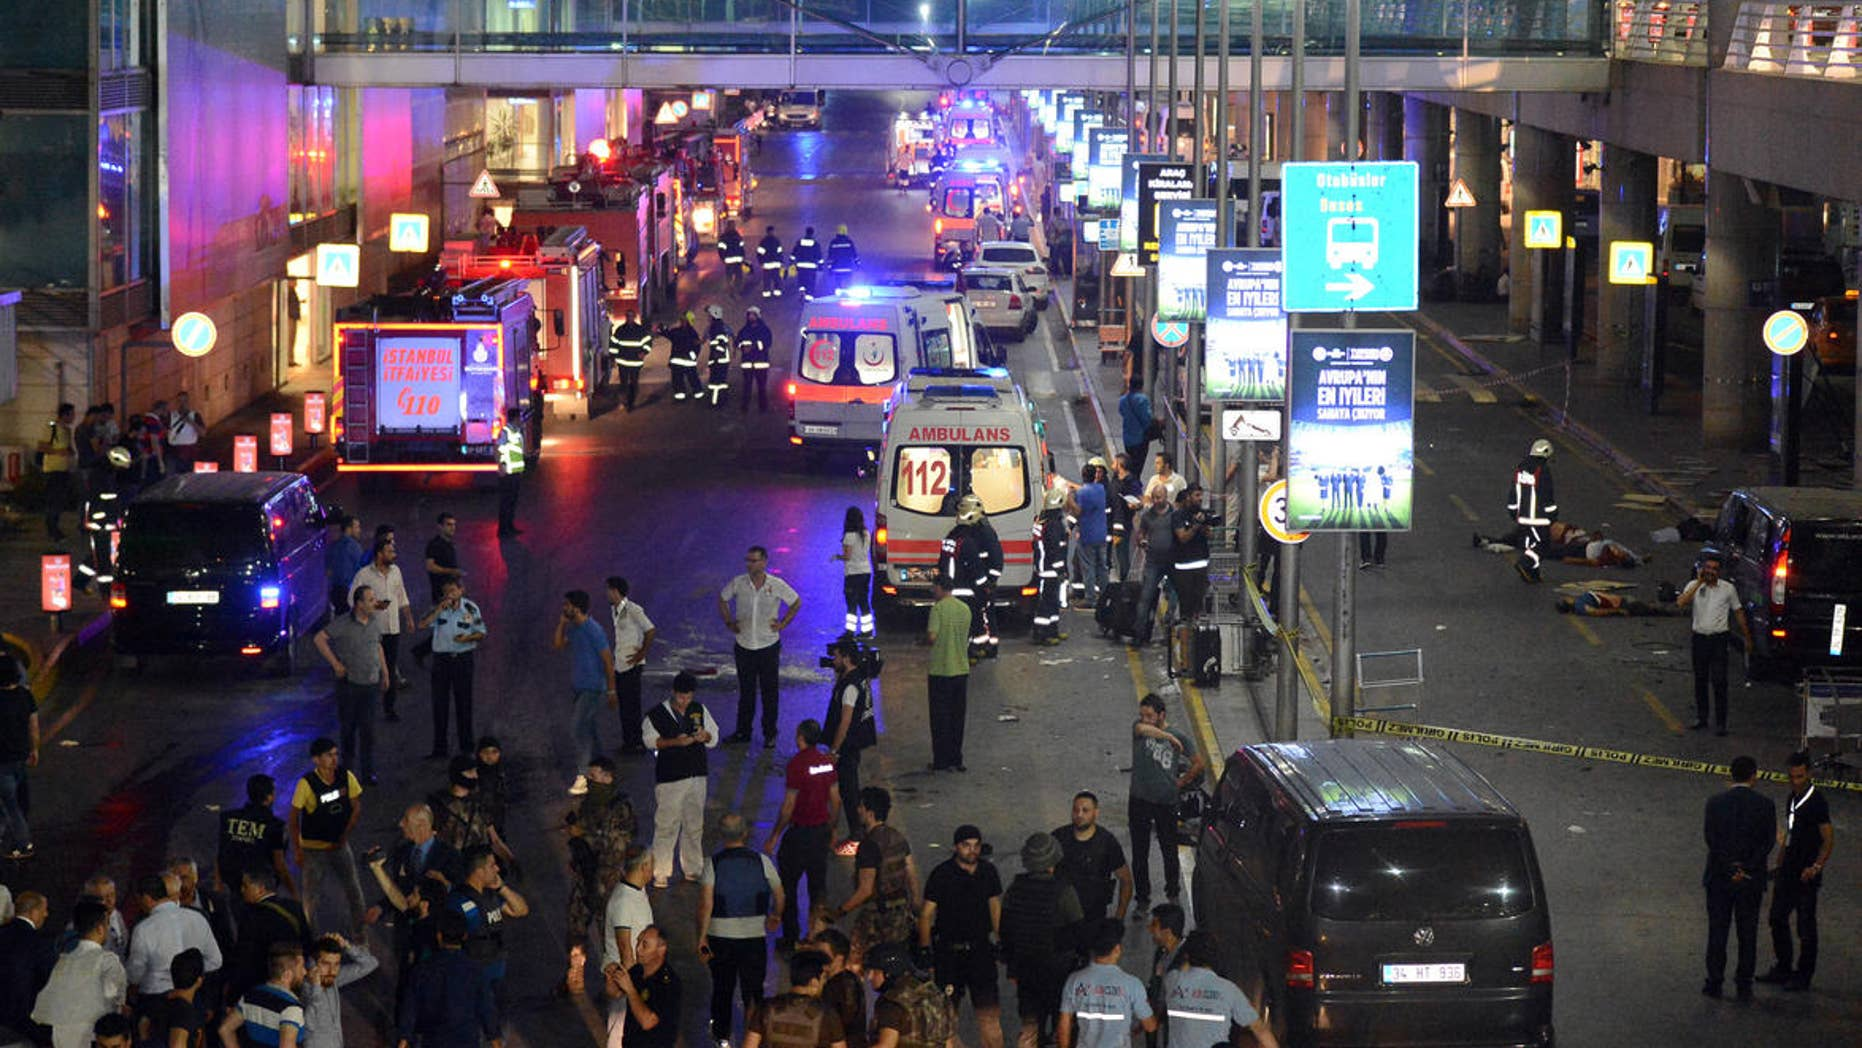 Medics and security members work at the entrance of the Ataturk Airport after explosions in Istanbul, Tuesday, June 28, 2016.